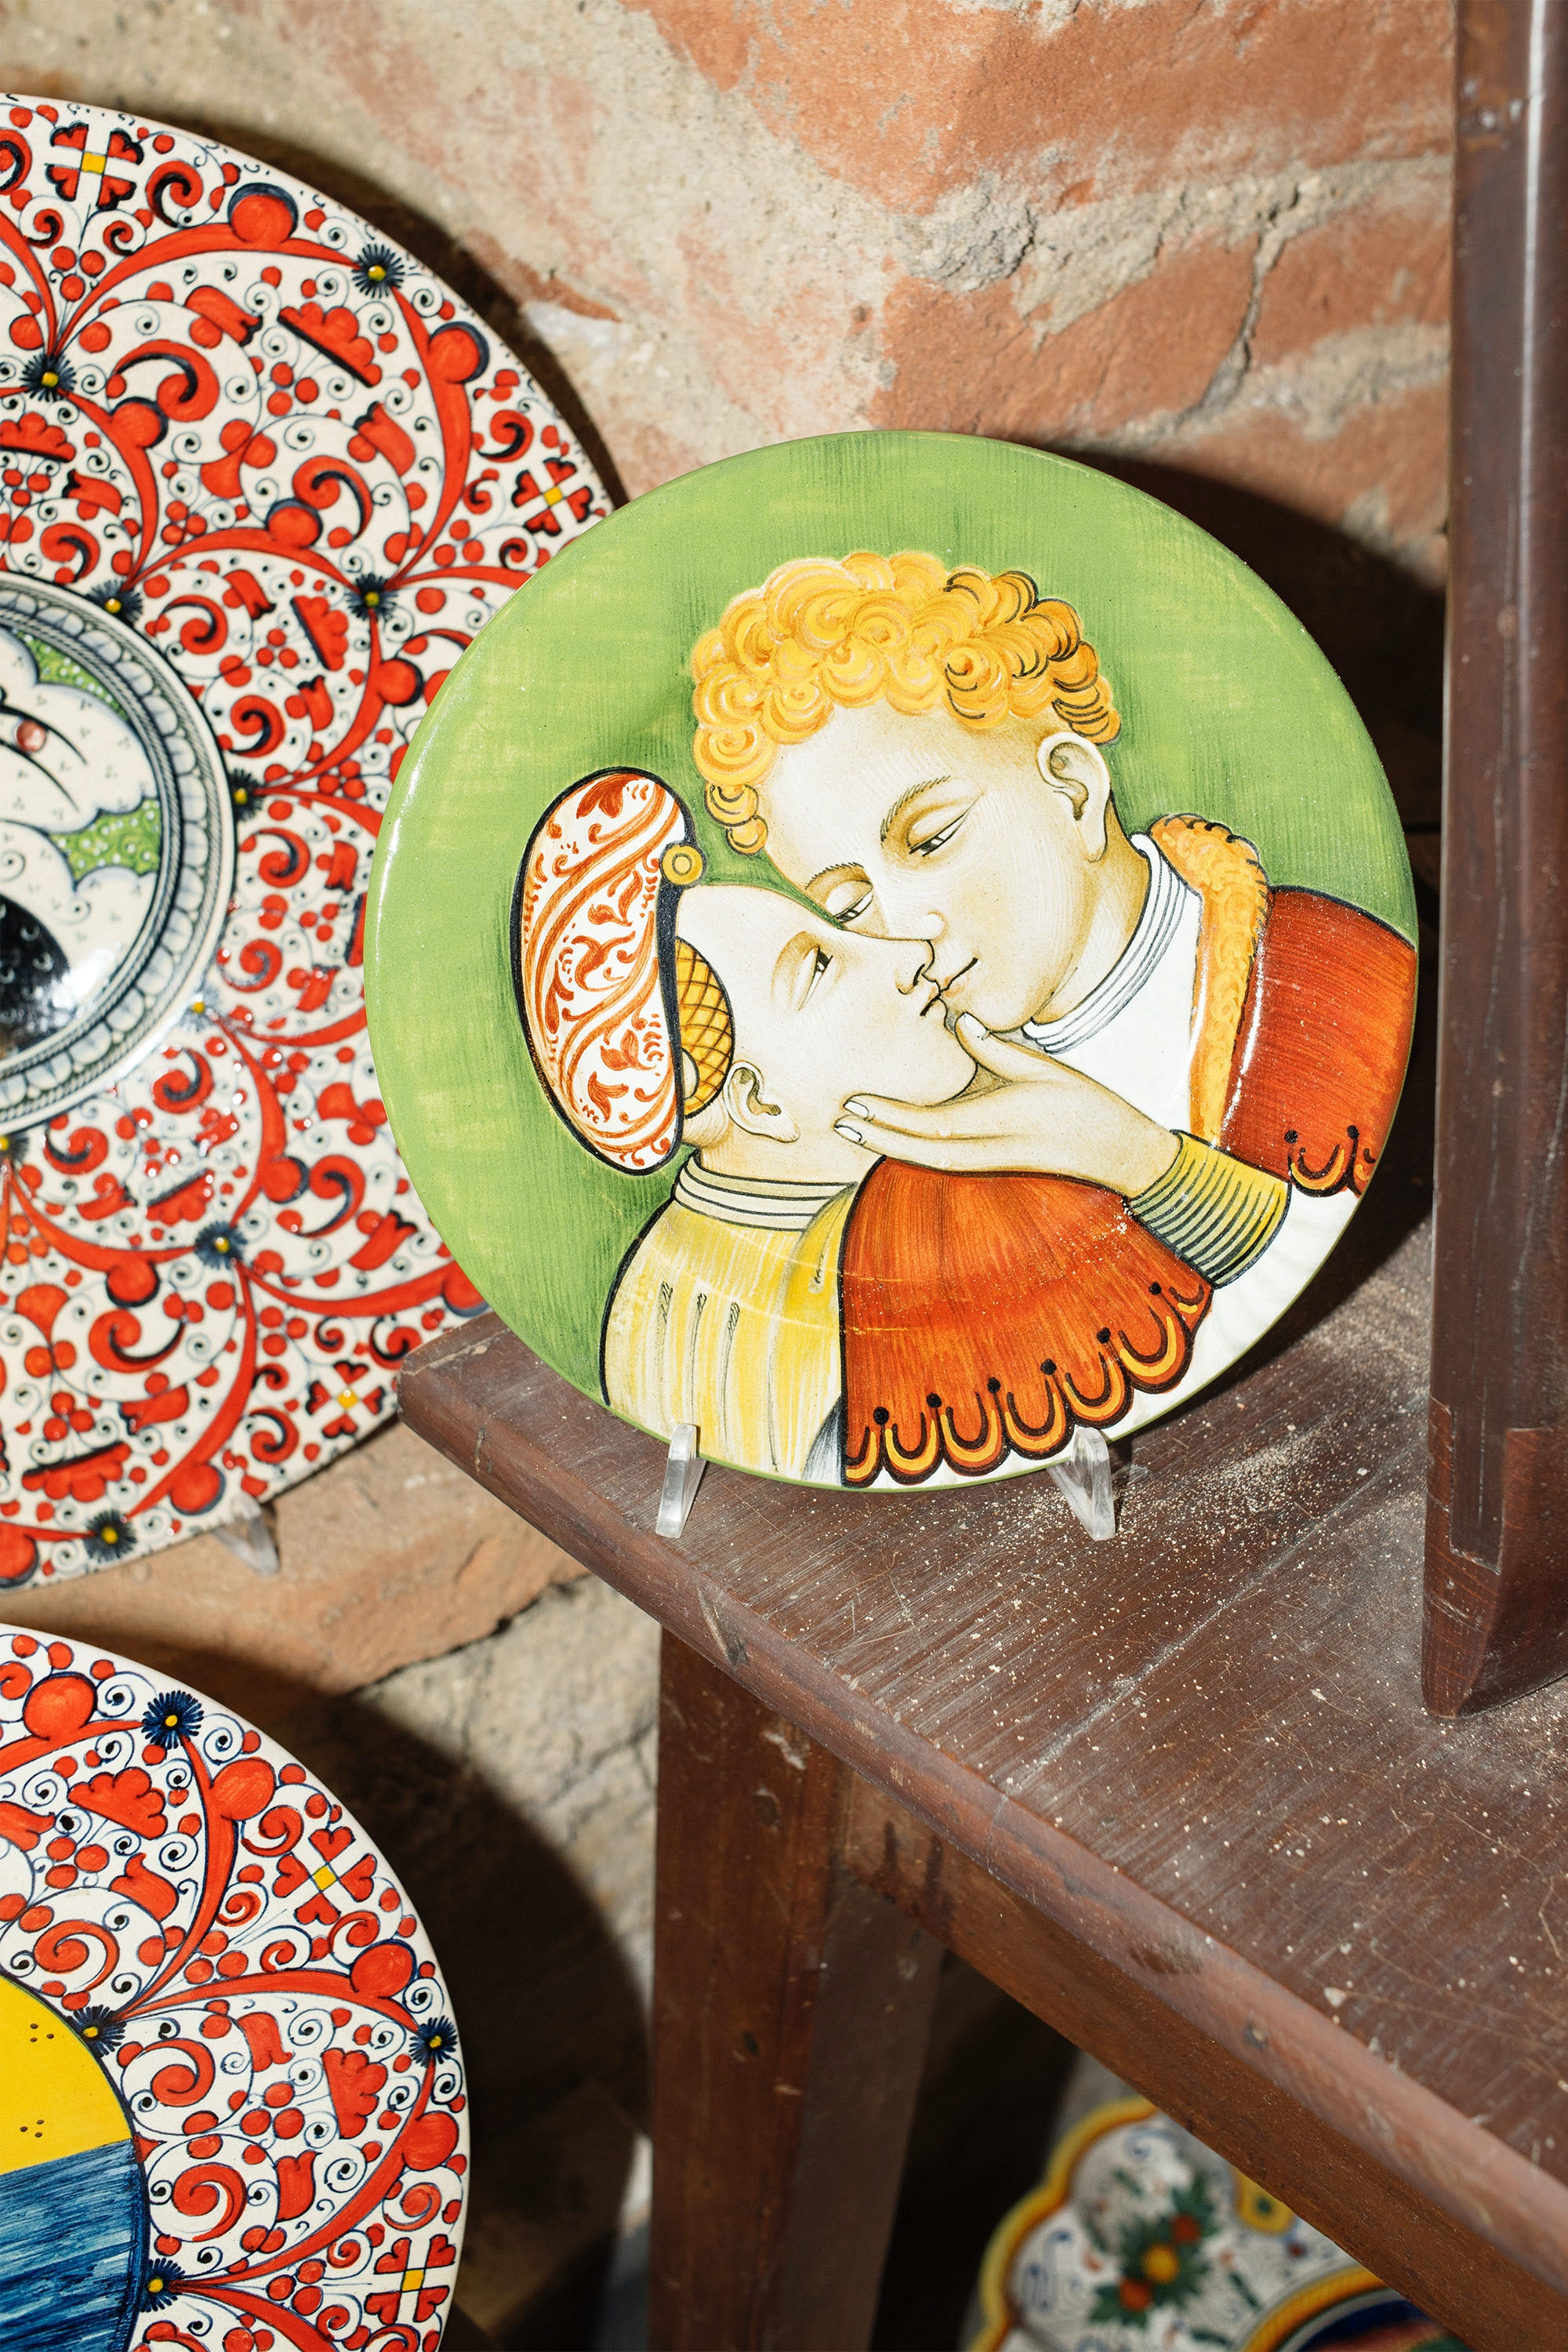 Dishware on display at a ceramics shop in Deruta.